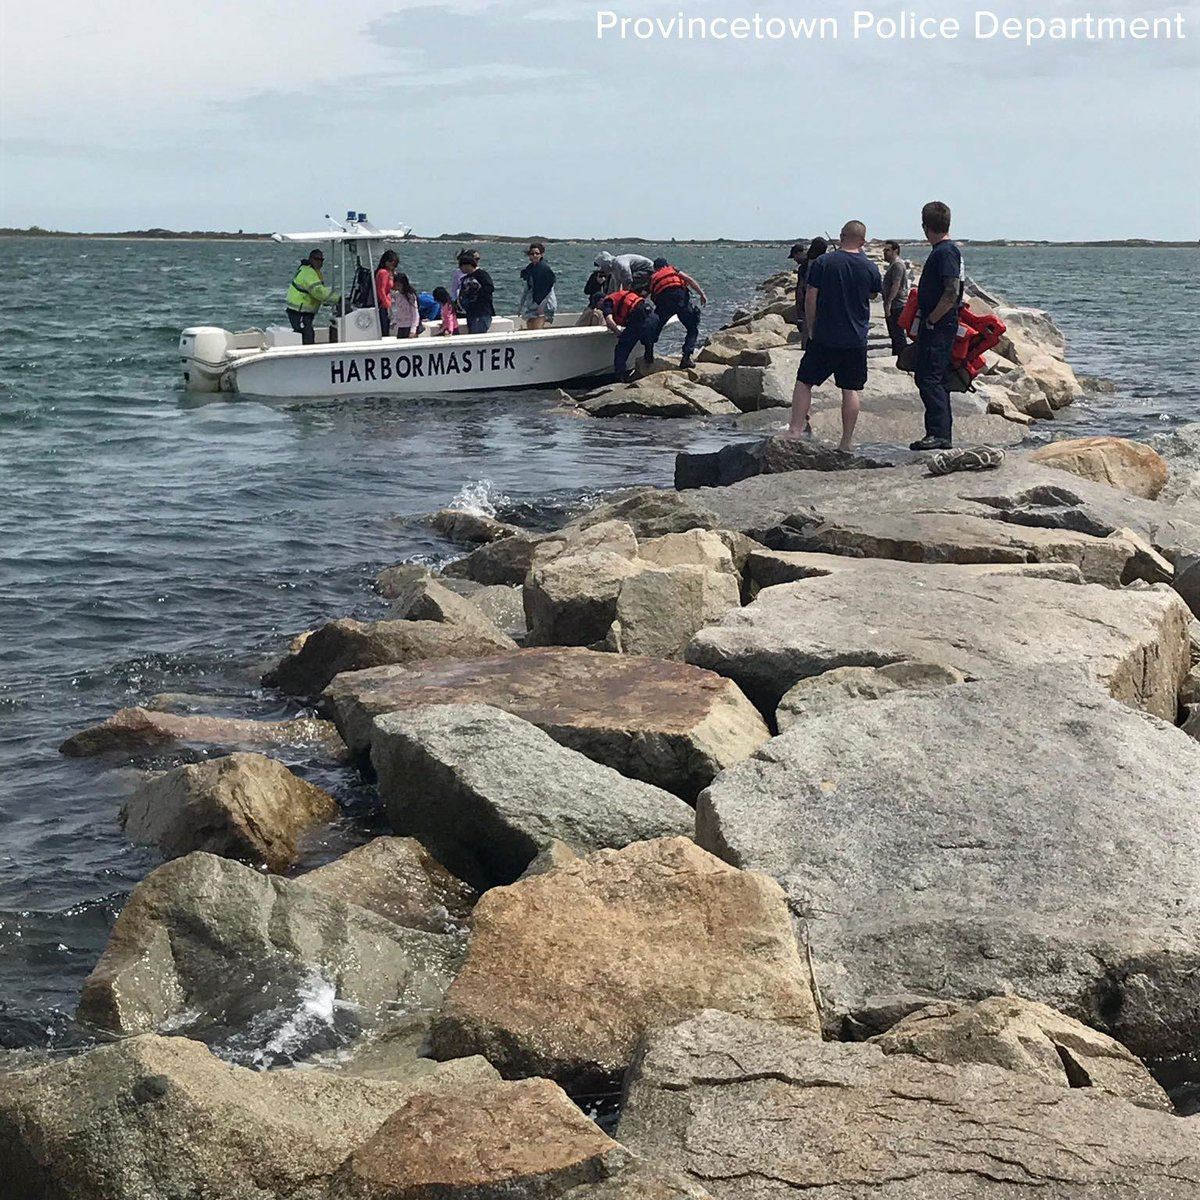 44 people rescued after high tide traps them on scenic footpath on rock wall at Provincetown, Massachusetts. https://t.co/iJa0Gqv5Vw